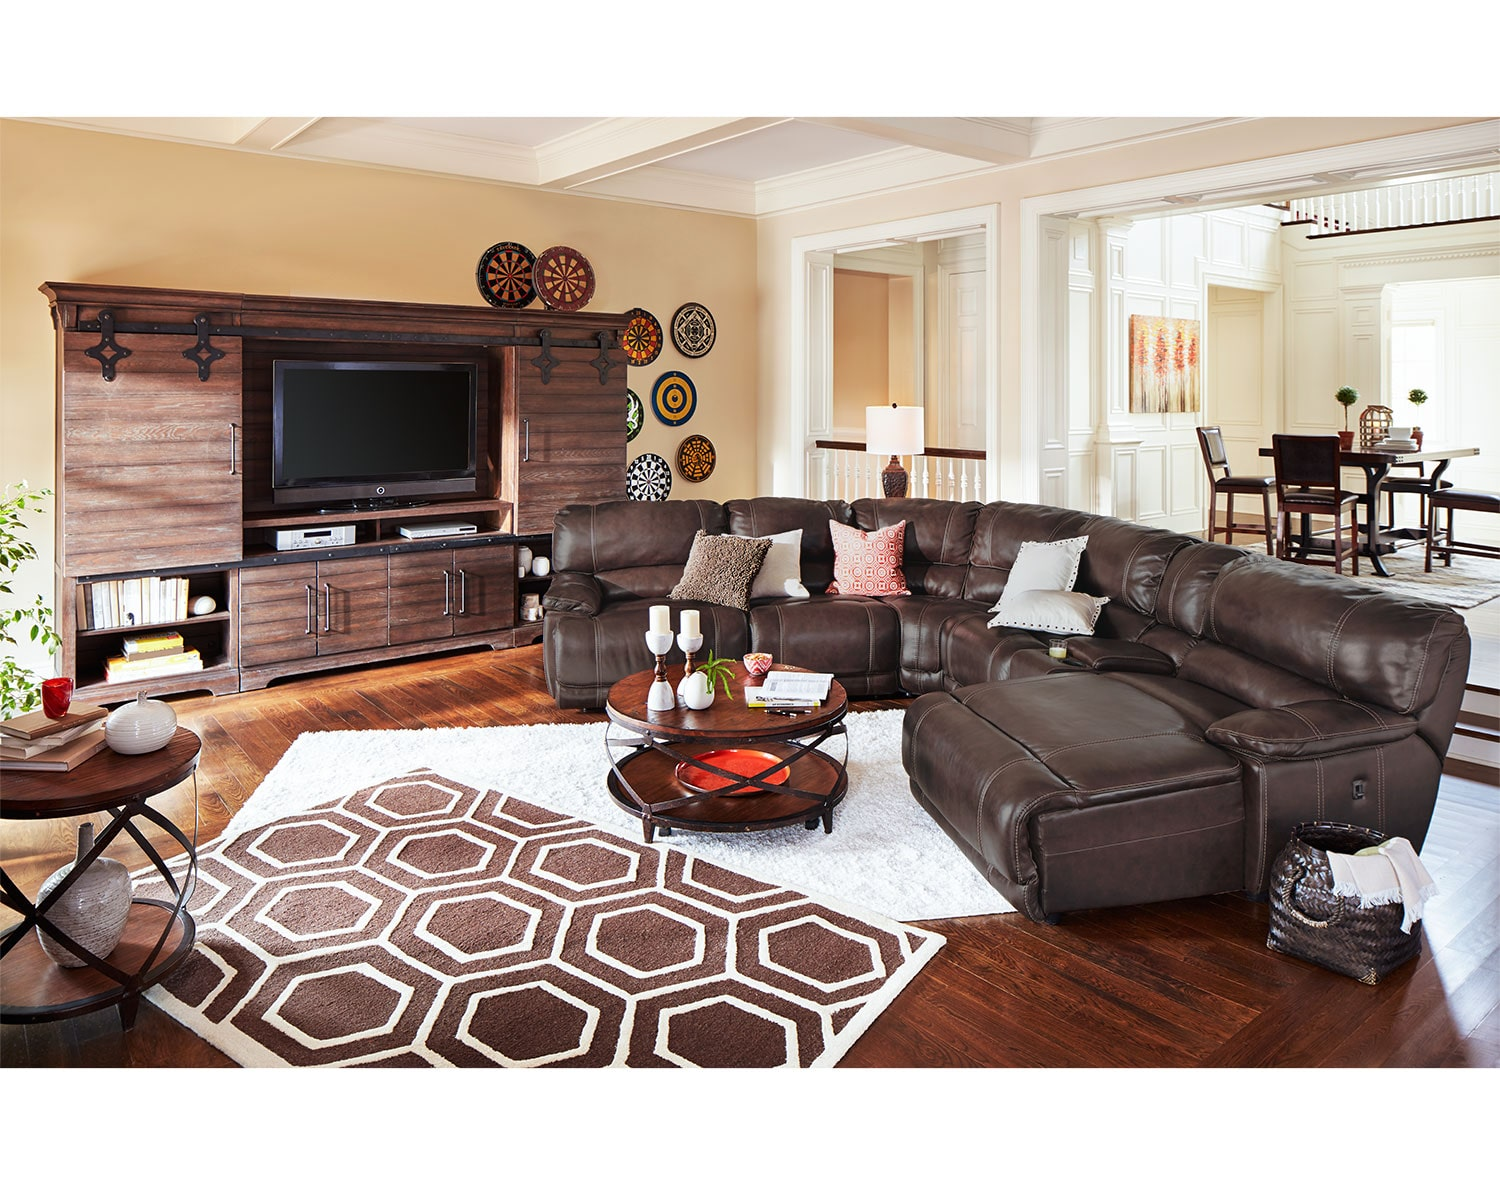 Leather Living Room Furniture Value City Furniture And Mattresses # Muebles Sleeping Dogs